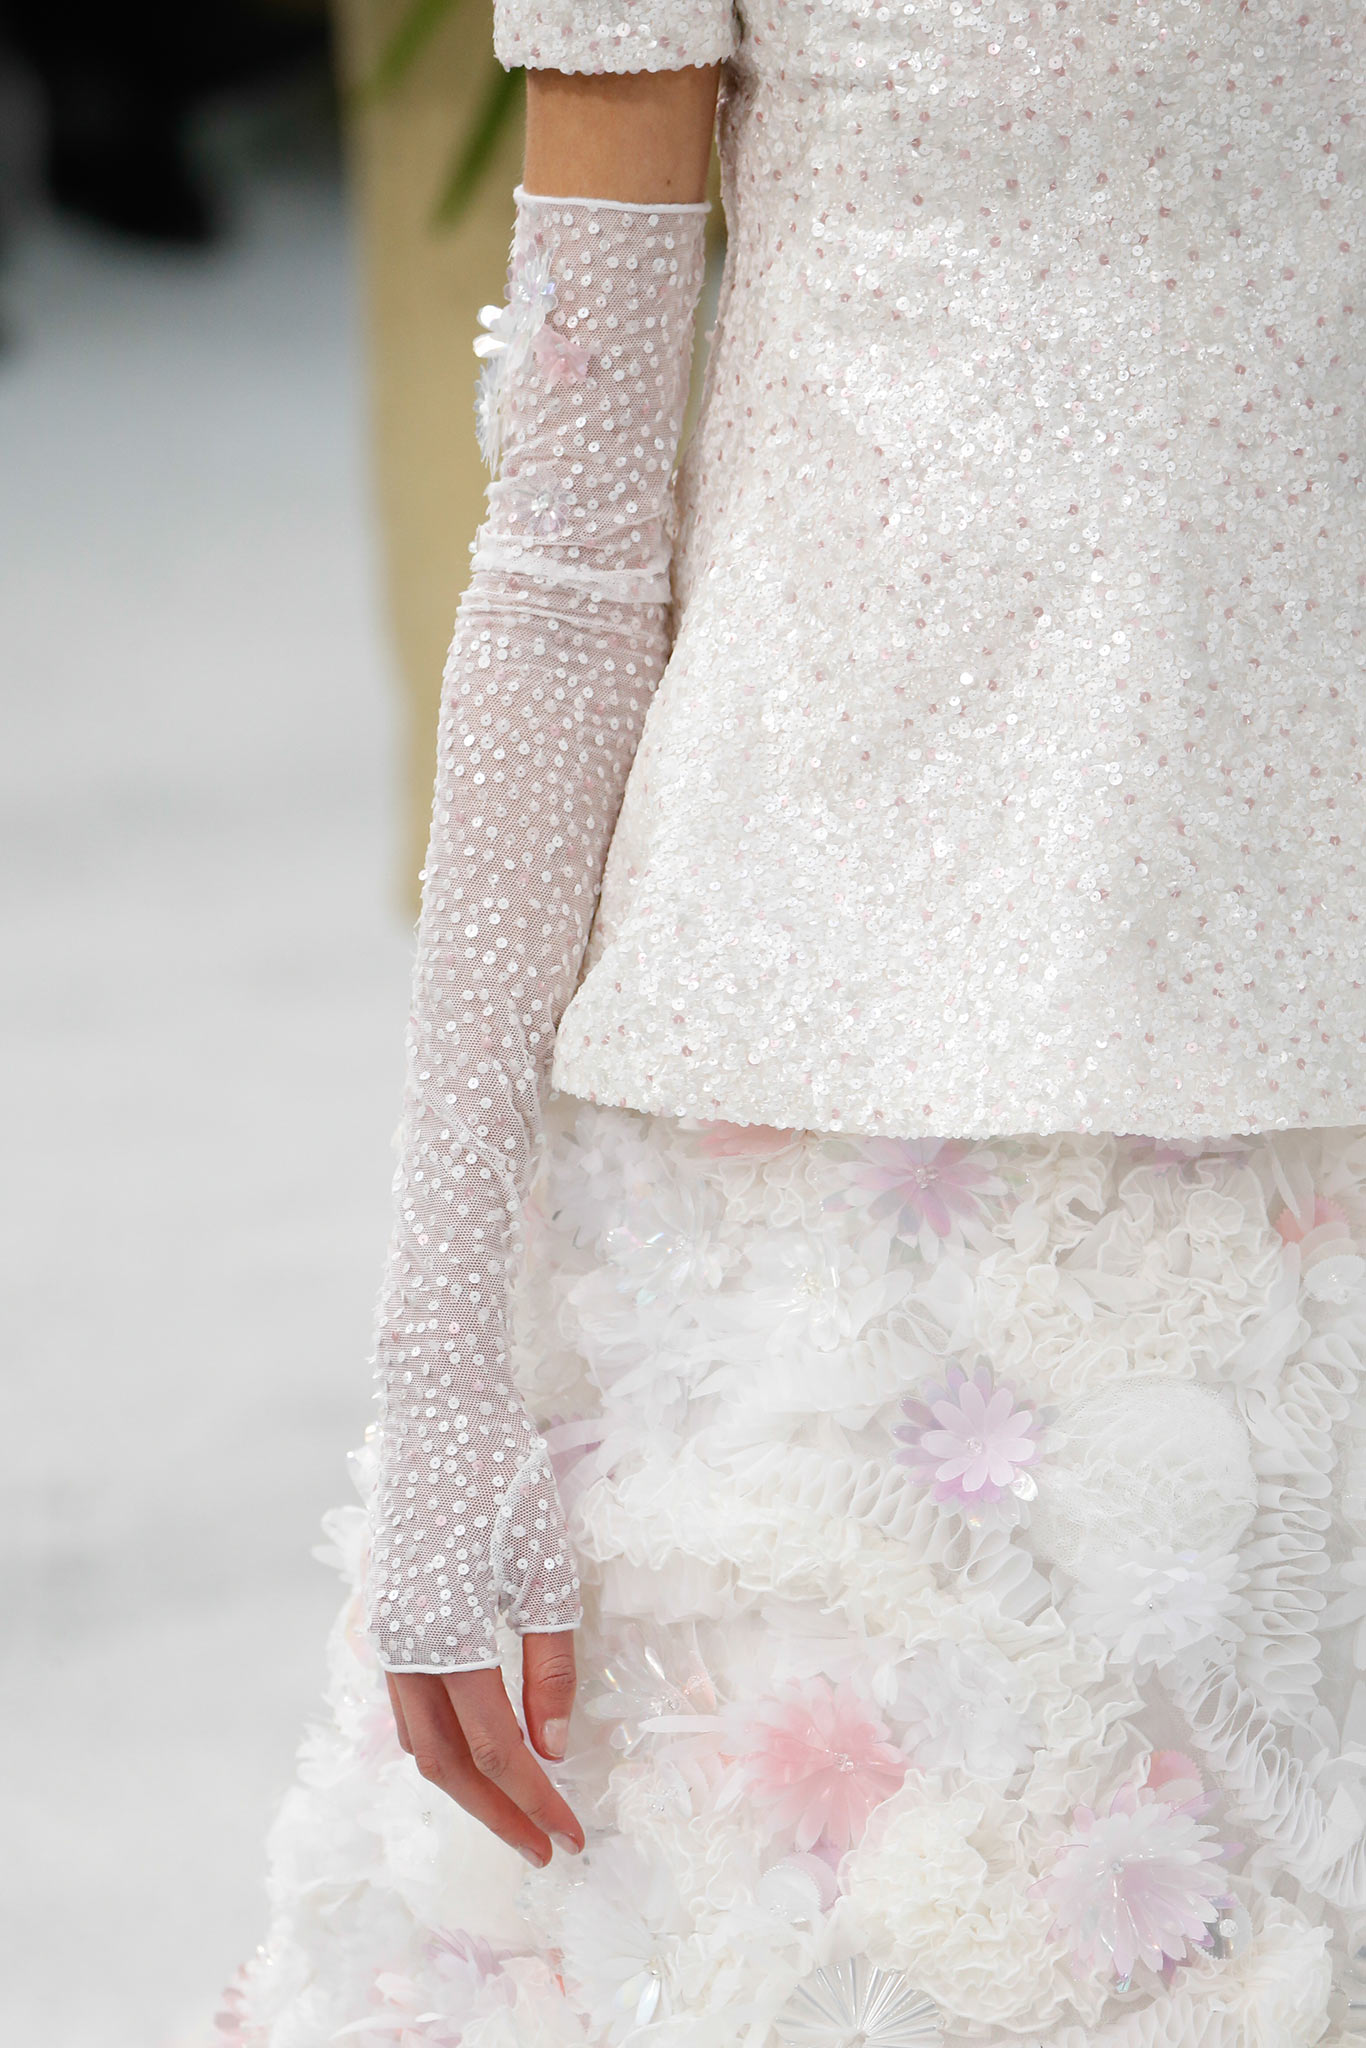 chanel haute couture spring/summer 2015 collection